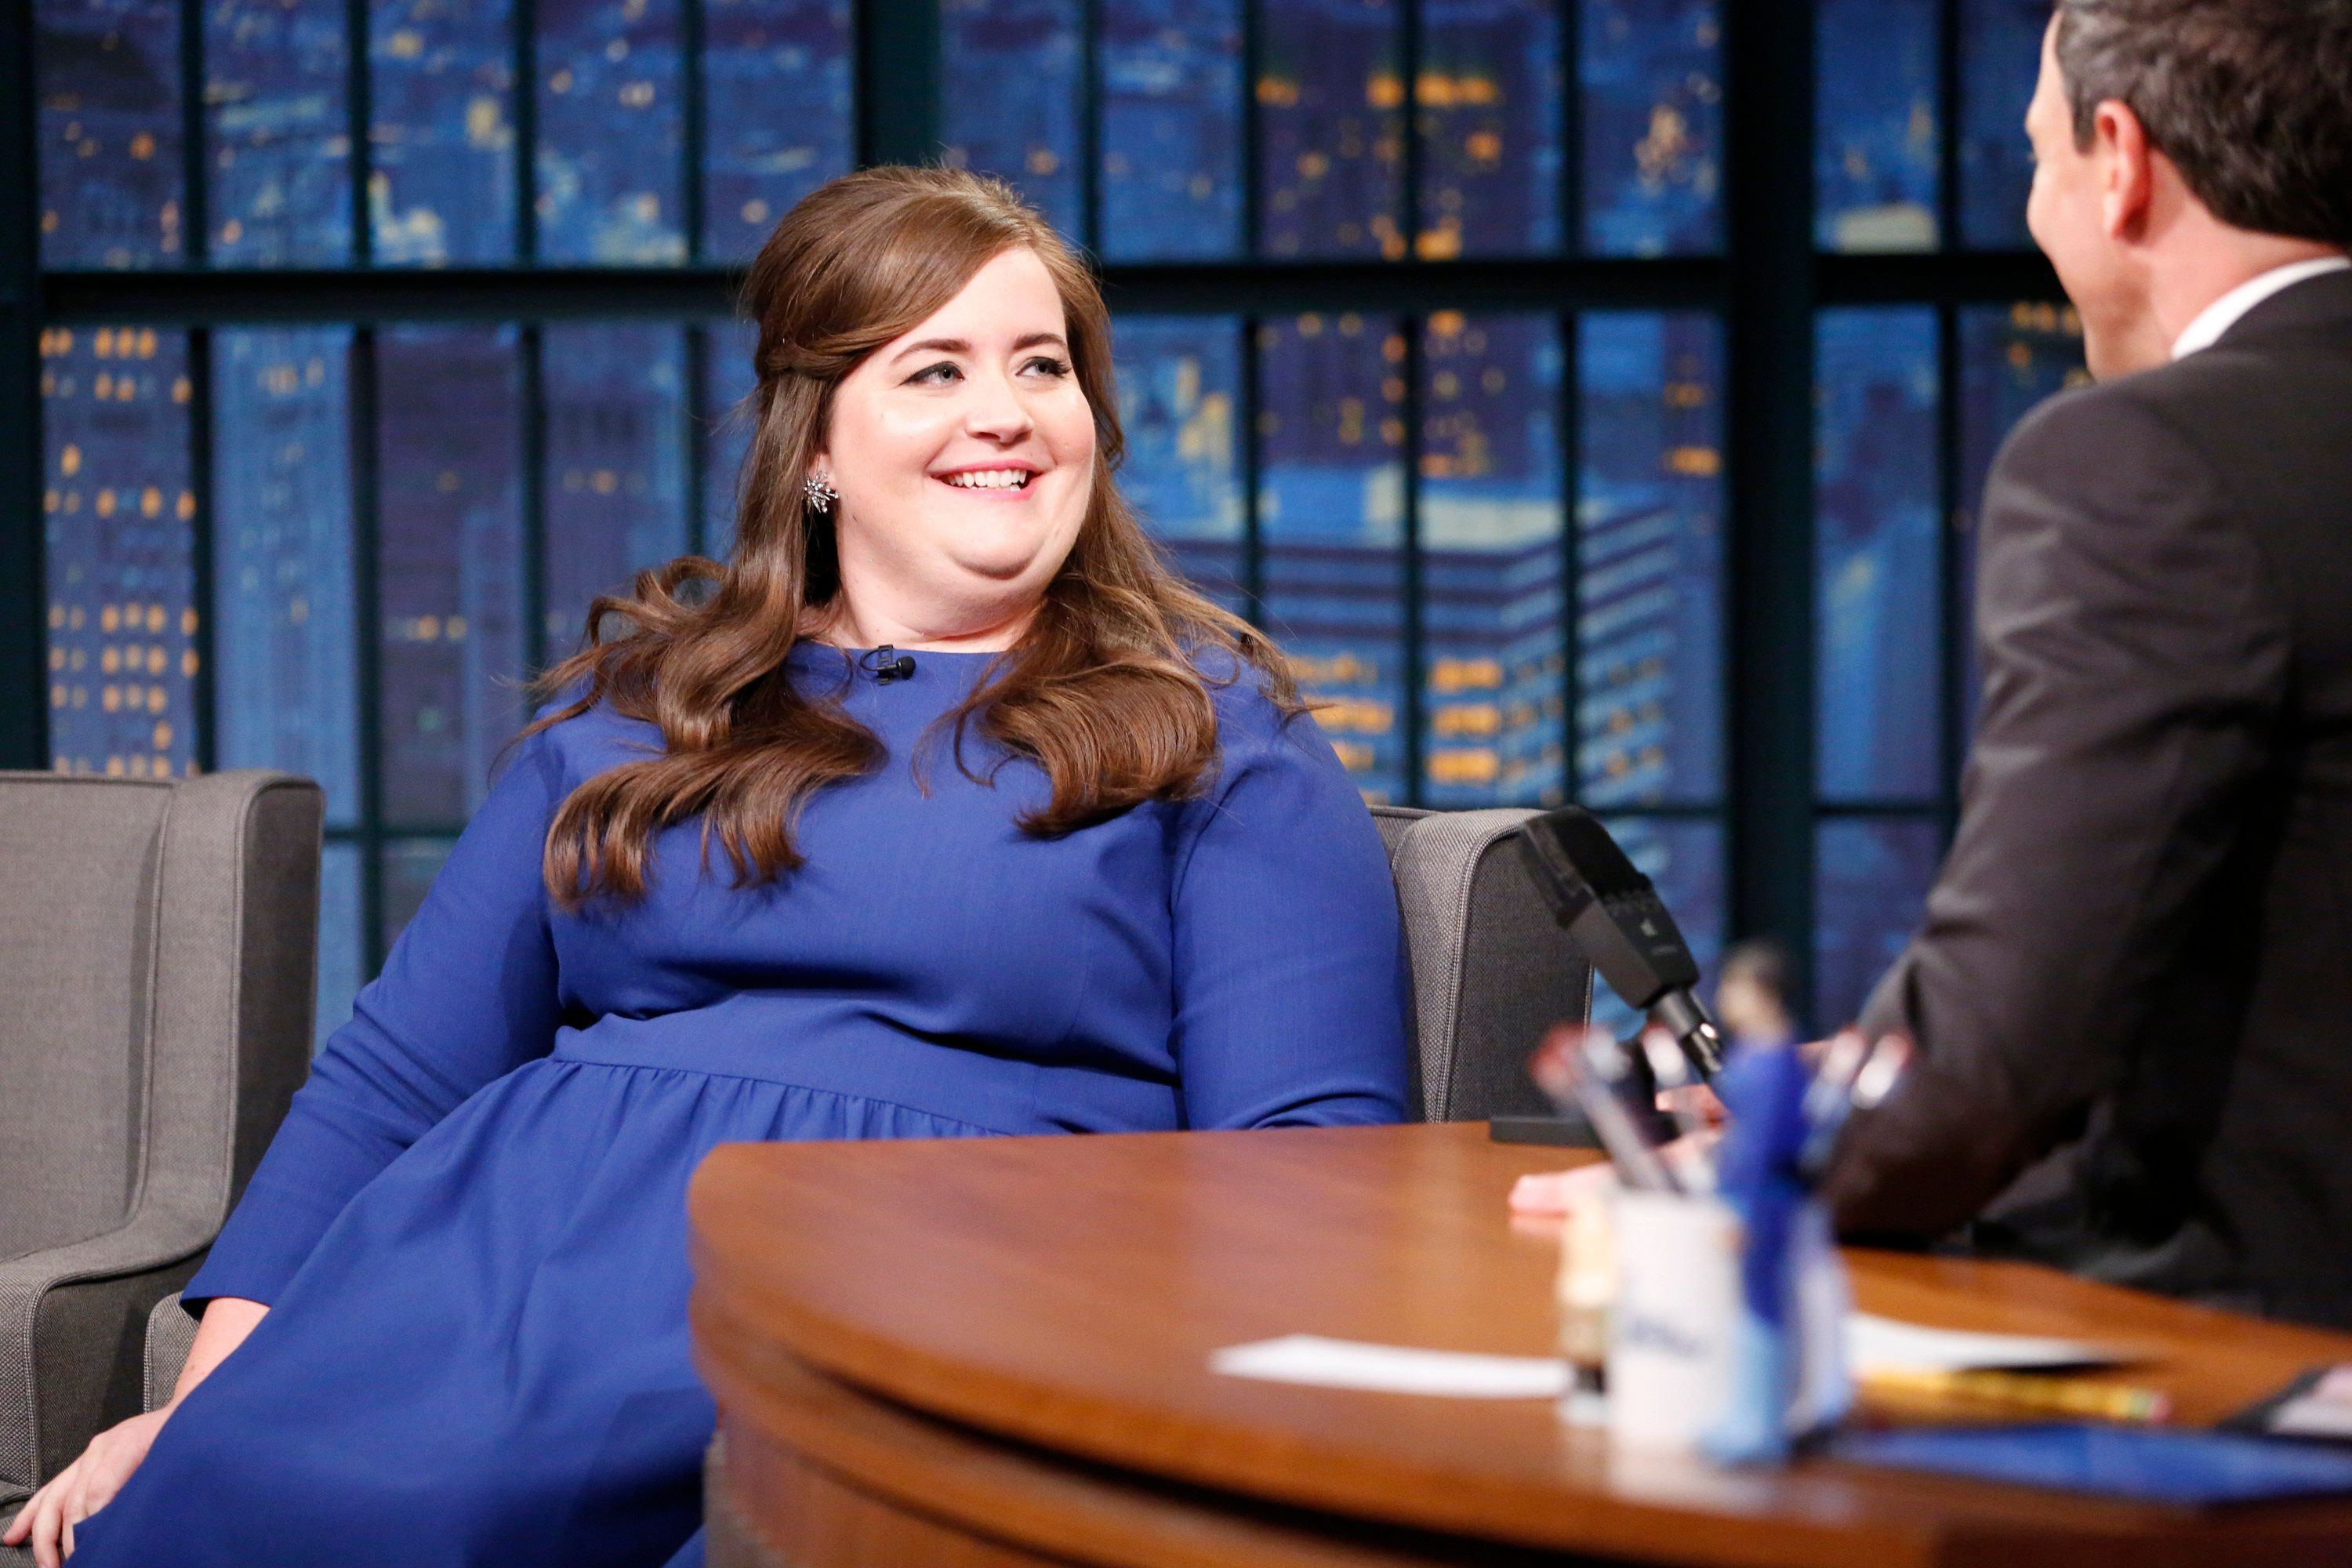 LATE NIGHT WITH SETH MEYERS -- Episode 519 -- Pictured: (l-r) Comedian Aidy Bryant during an interview with host Seth Meyers on April 27, 2017 -- (Photo by: Lloyd Bishop/NBC/NBCU Photo Bank via Getty Images)